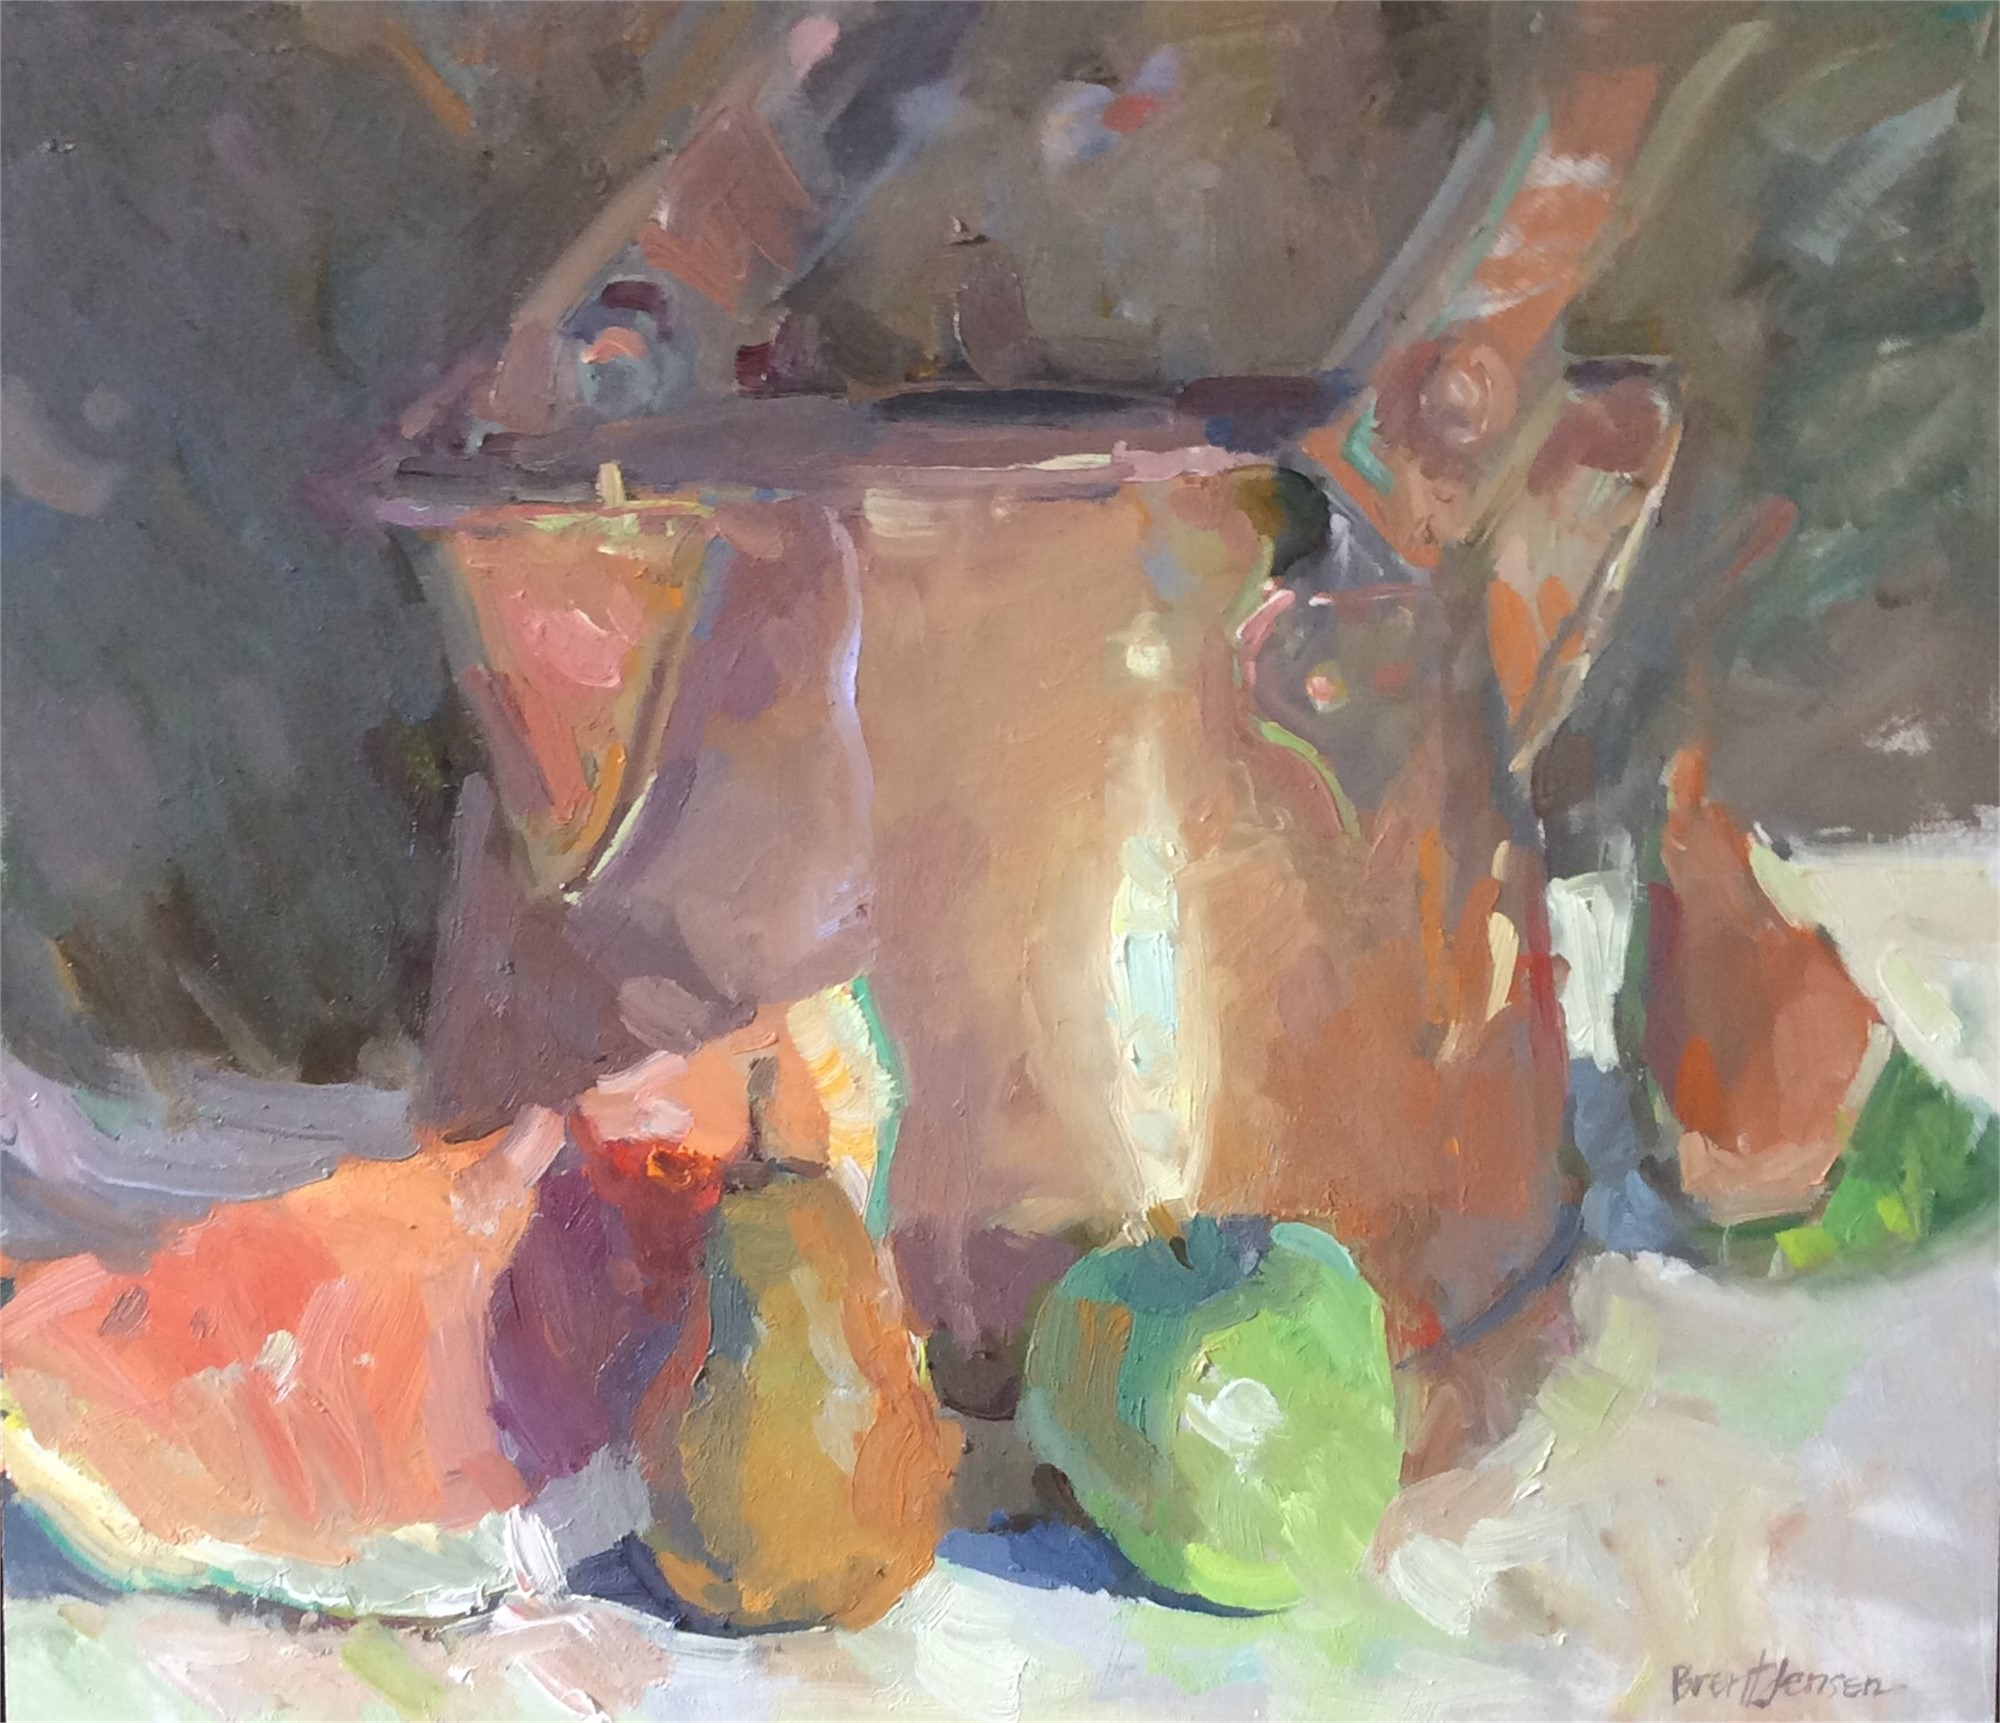 Copper Pot With Fruit, 2017 by Brent Jensen